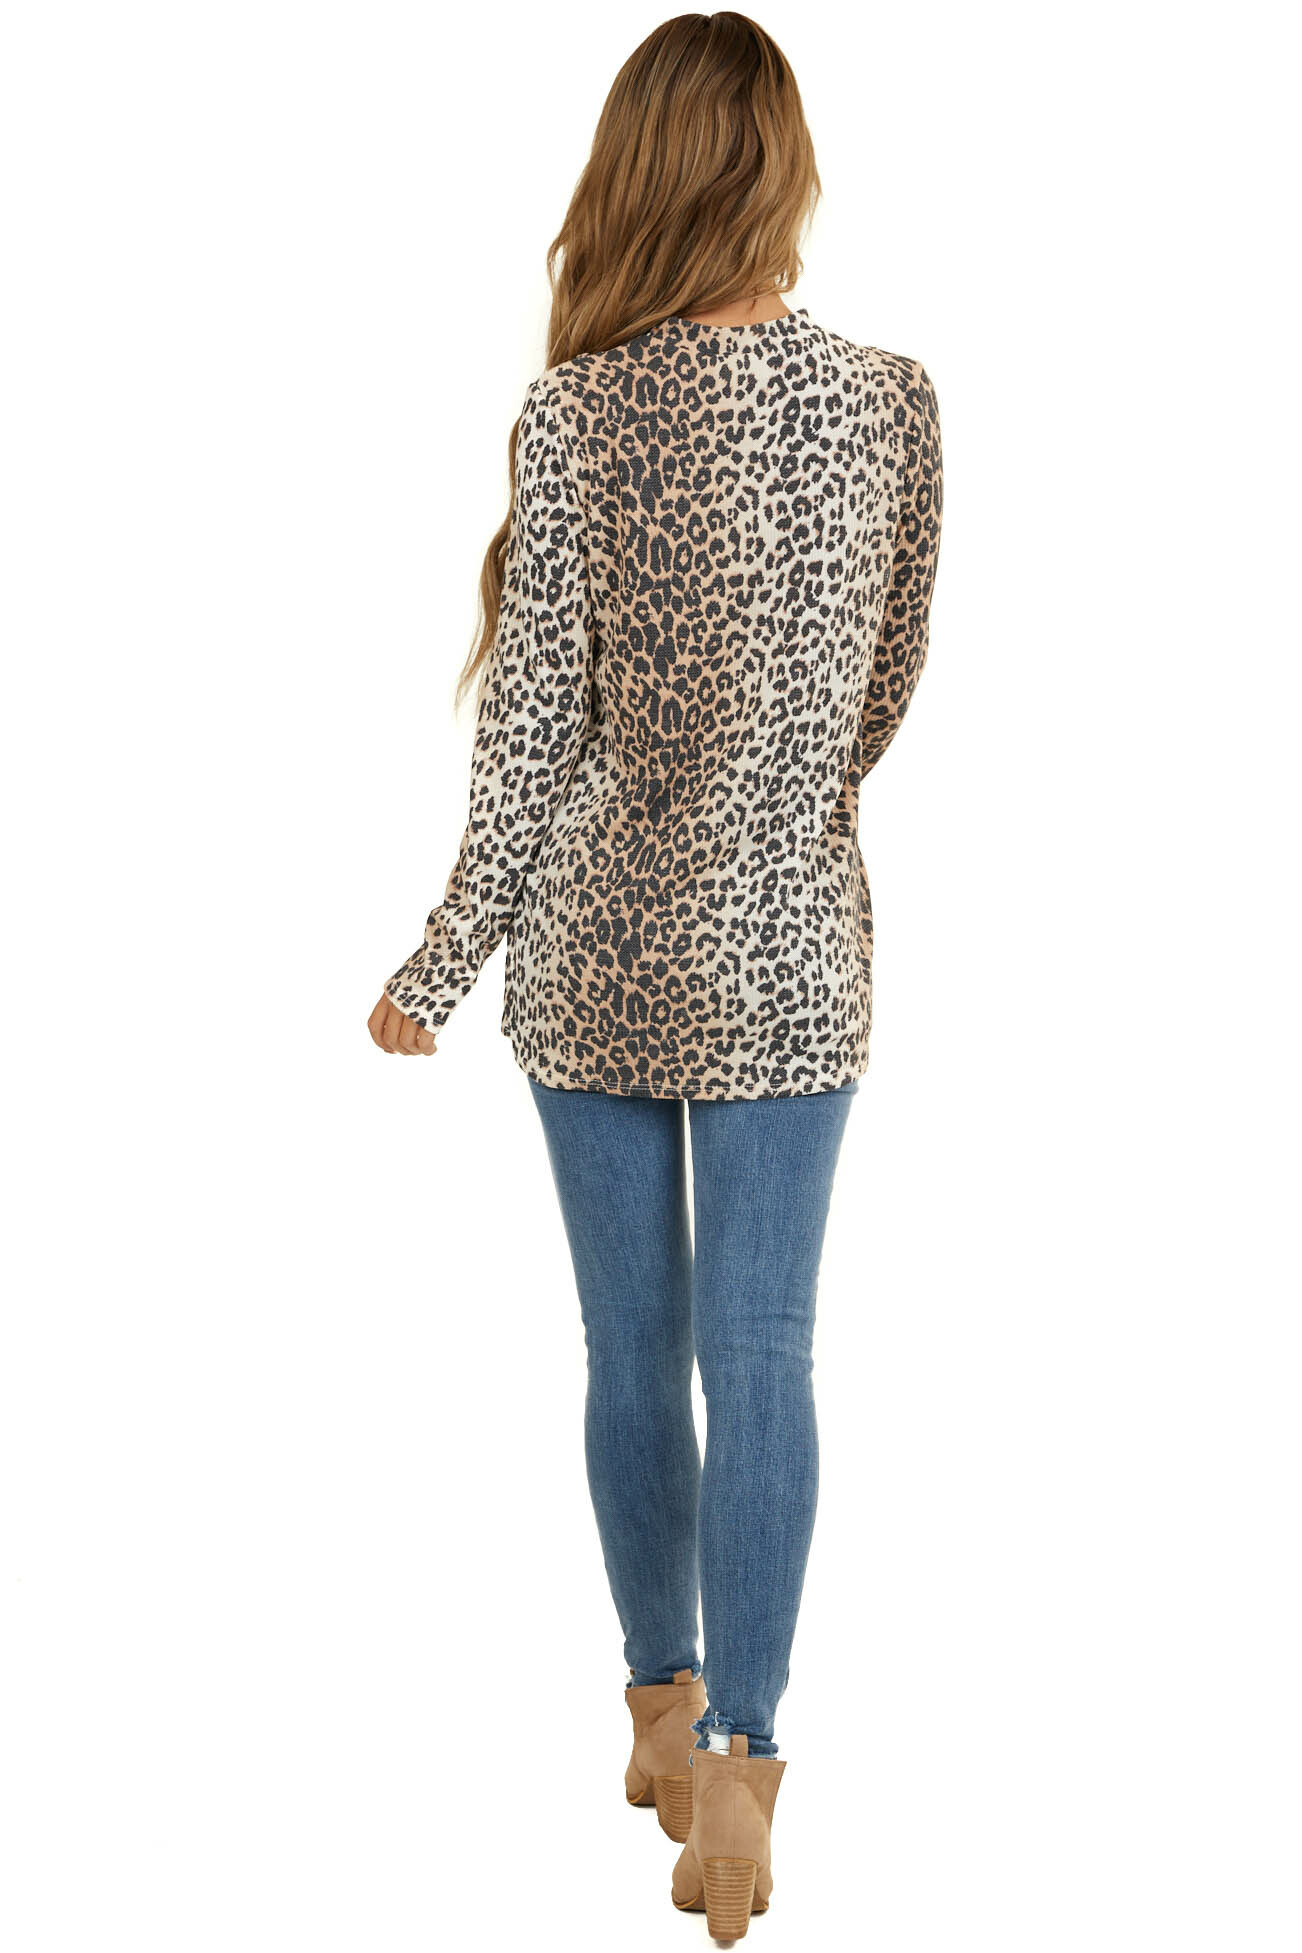 Latte Leopard Long Sleeve Waffle Knit Top with Cutout Detail